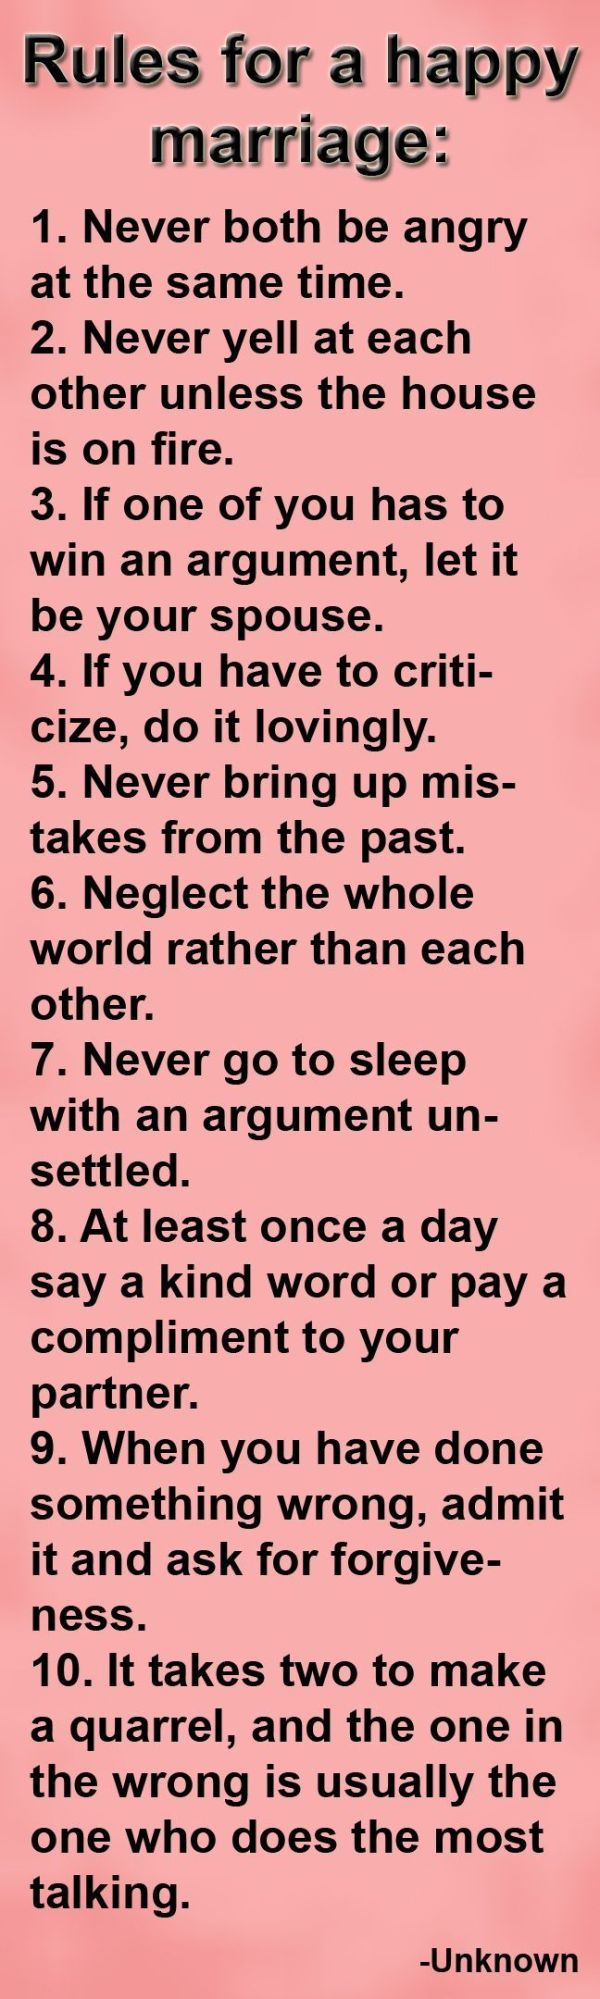 Rules For A Happy Marriage Pictures Photos and Images